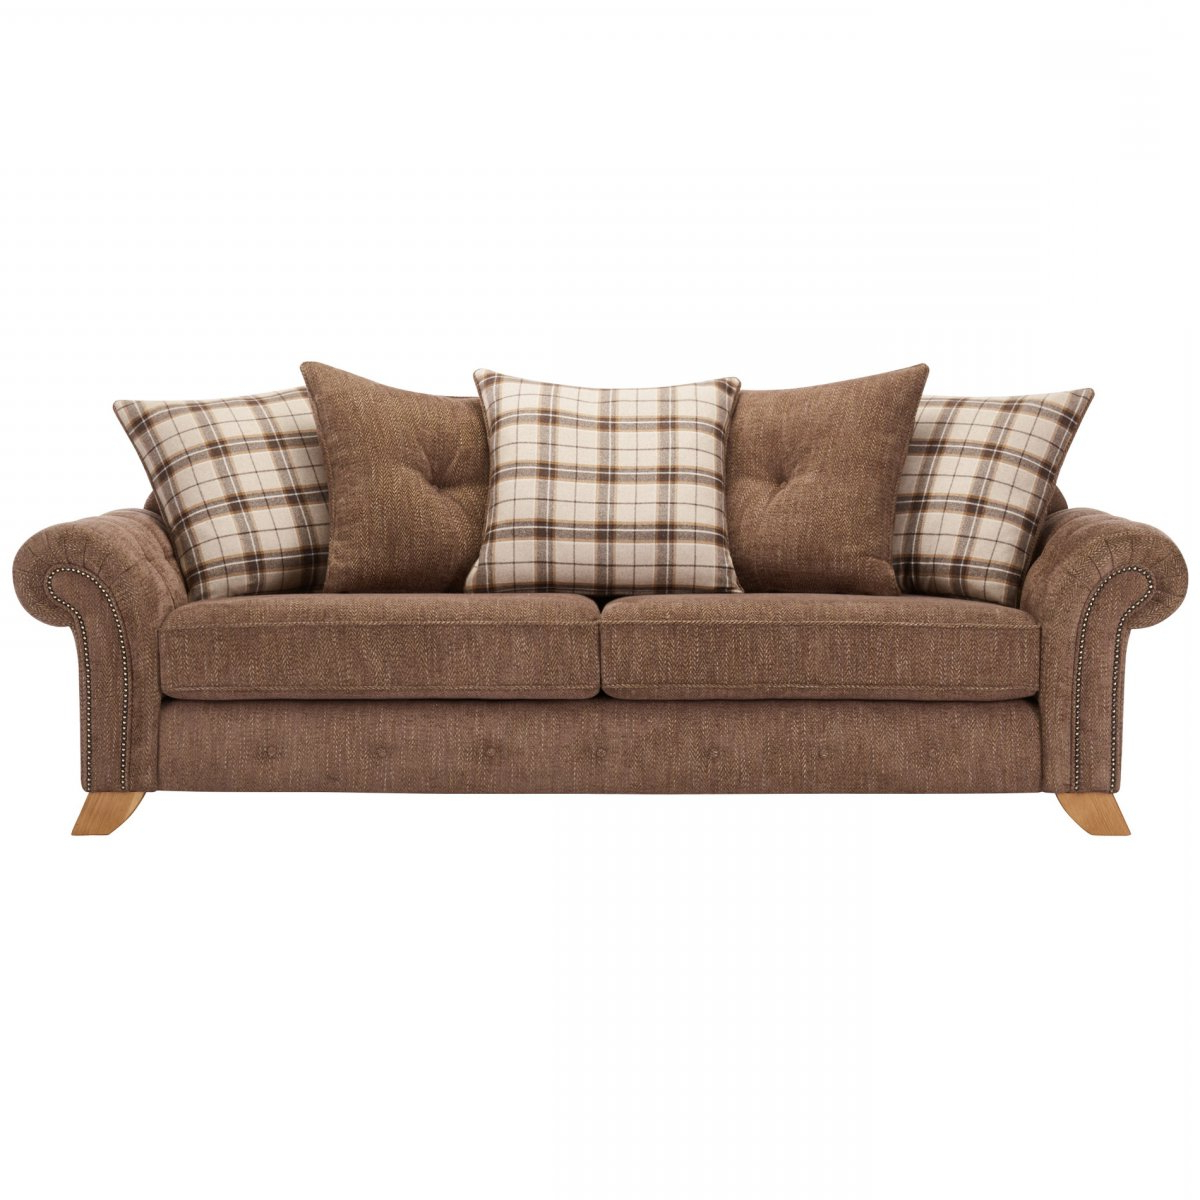 Montana Sofas Intended For Latest Montana 4 Seater Sofa With Pillow Back In Brown Fabric (View 9 of 15)